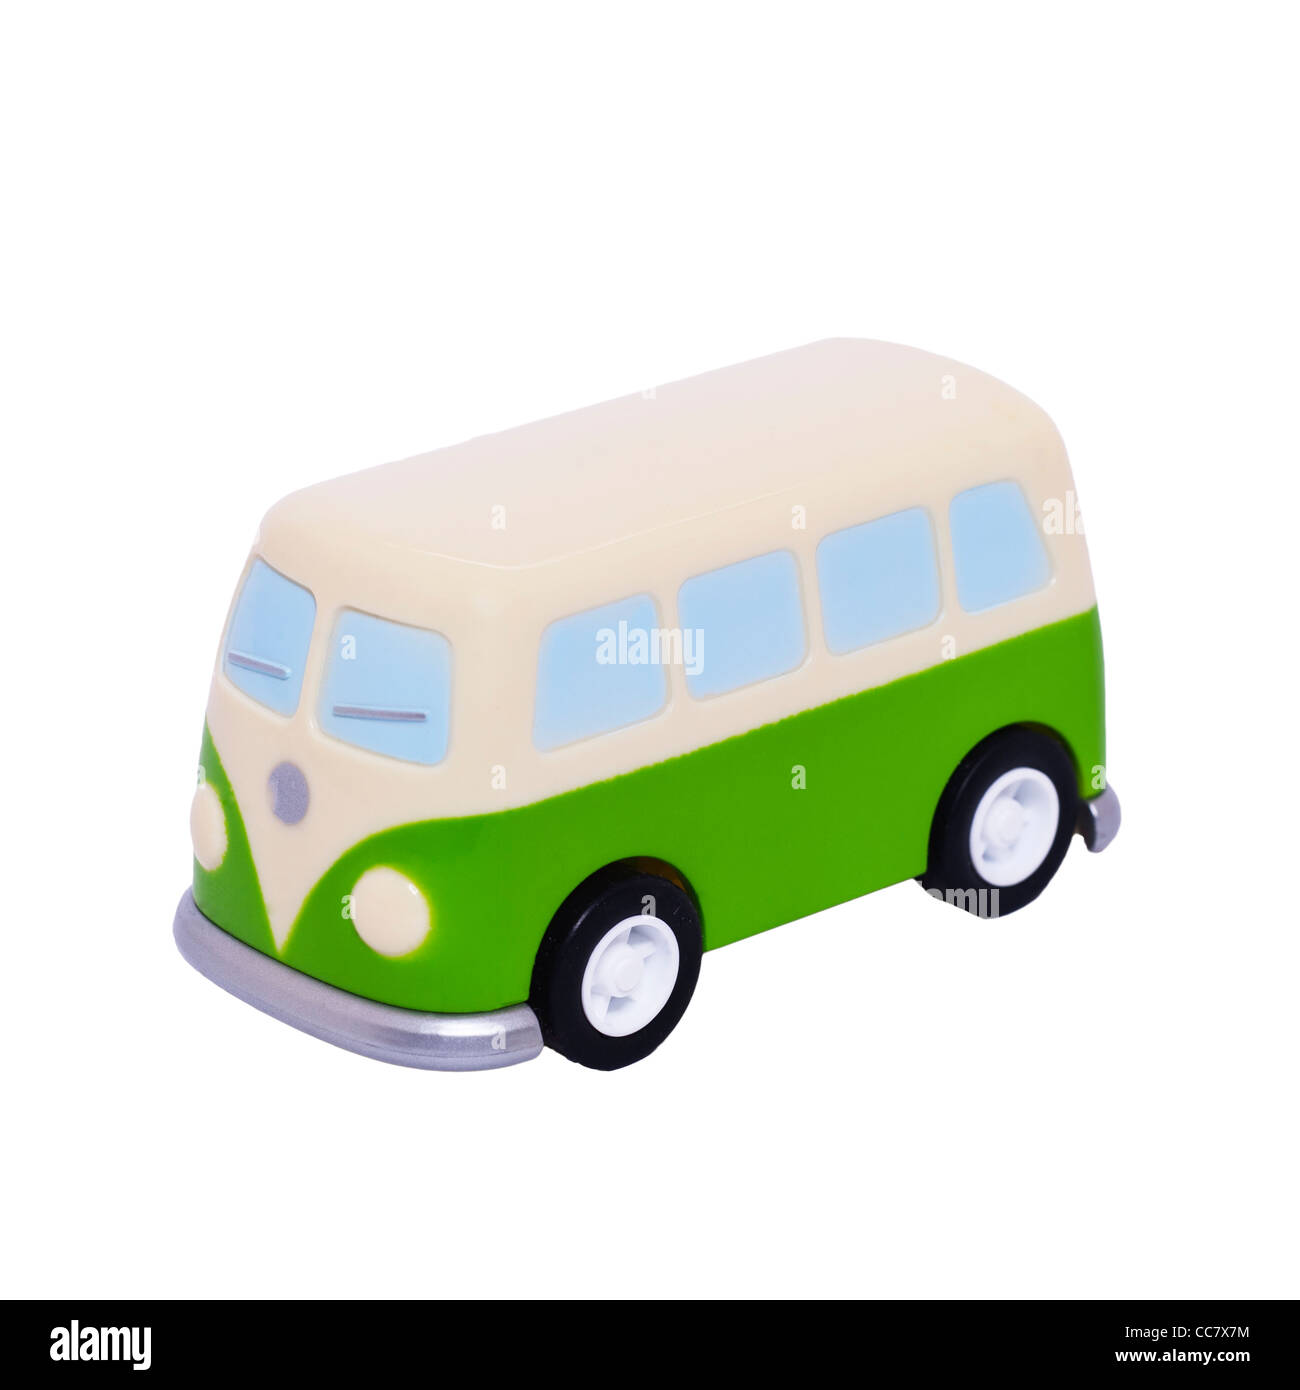 A model toy VW camper van on a white background Stock Photo